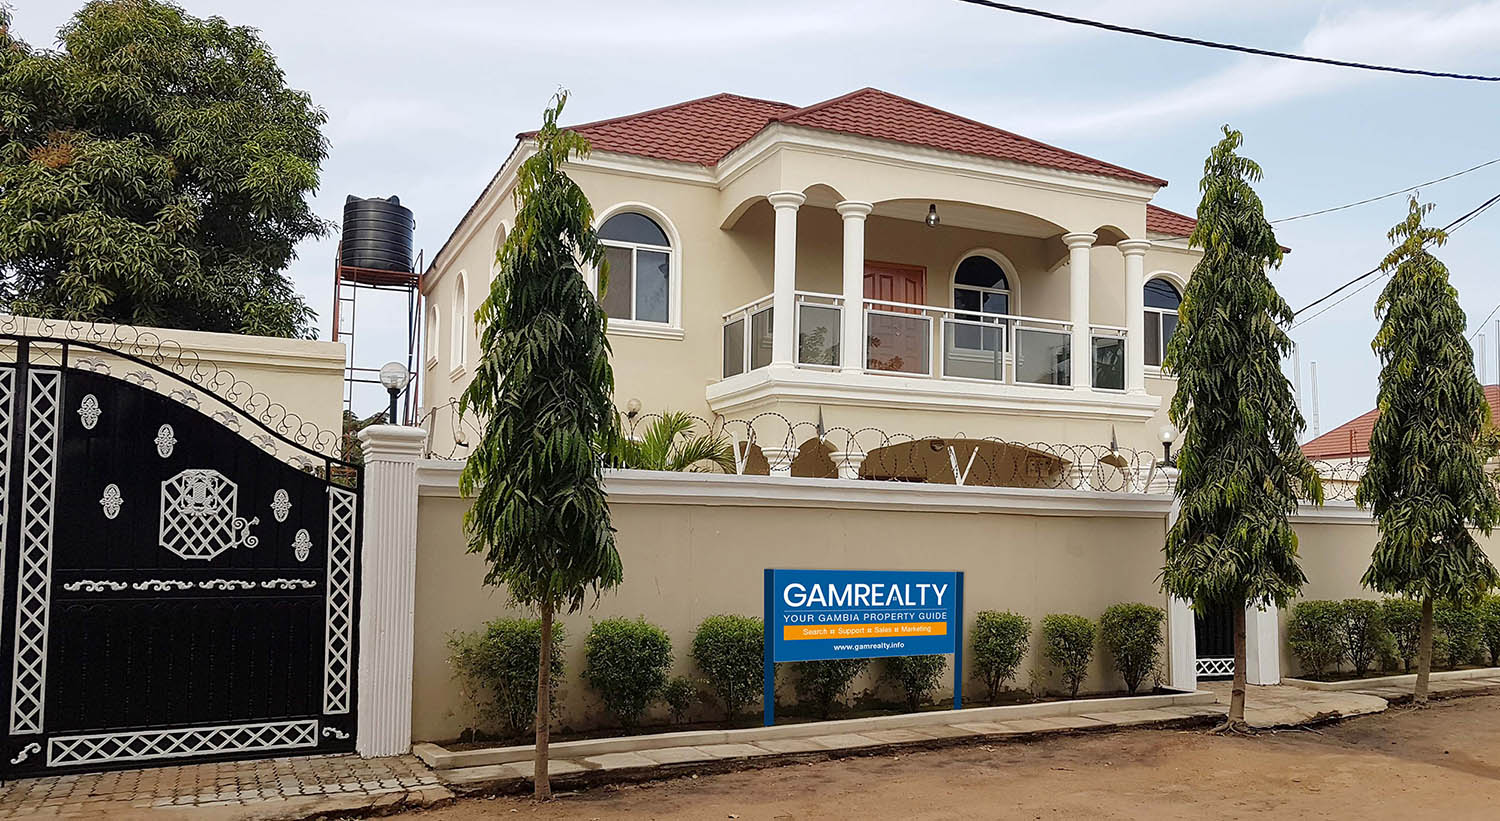 GamRealty head office in the Gambia